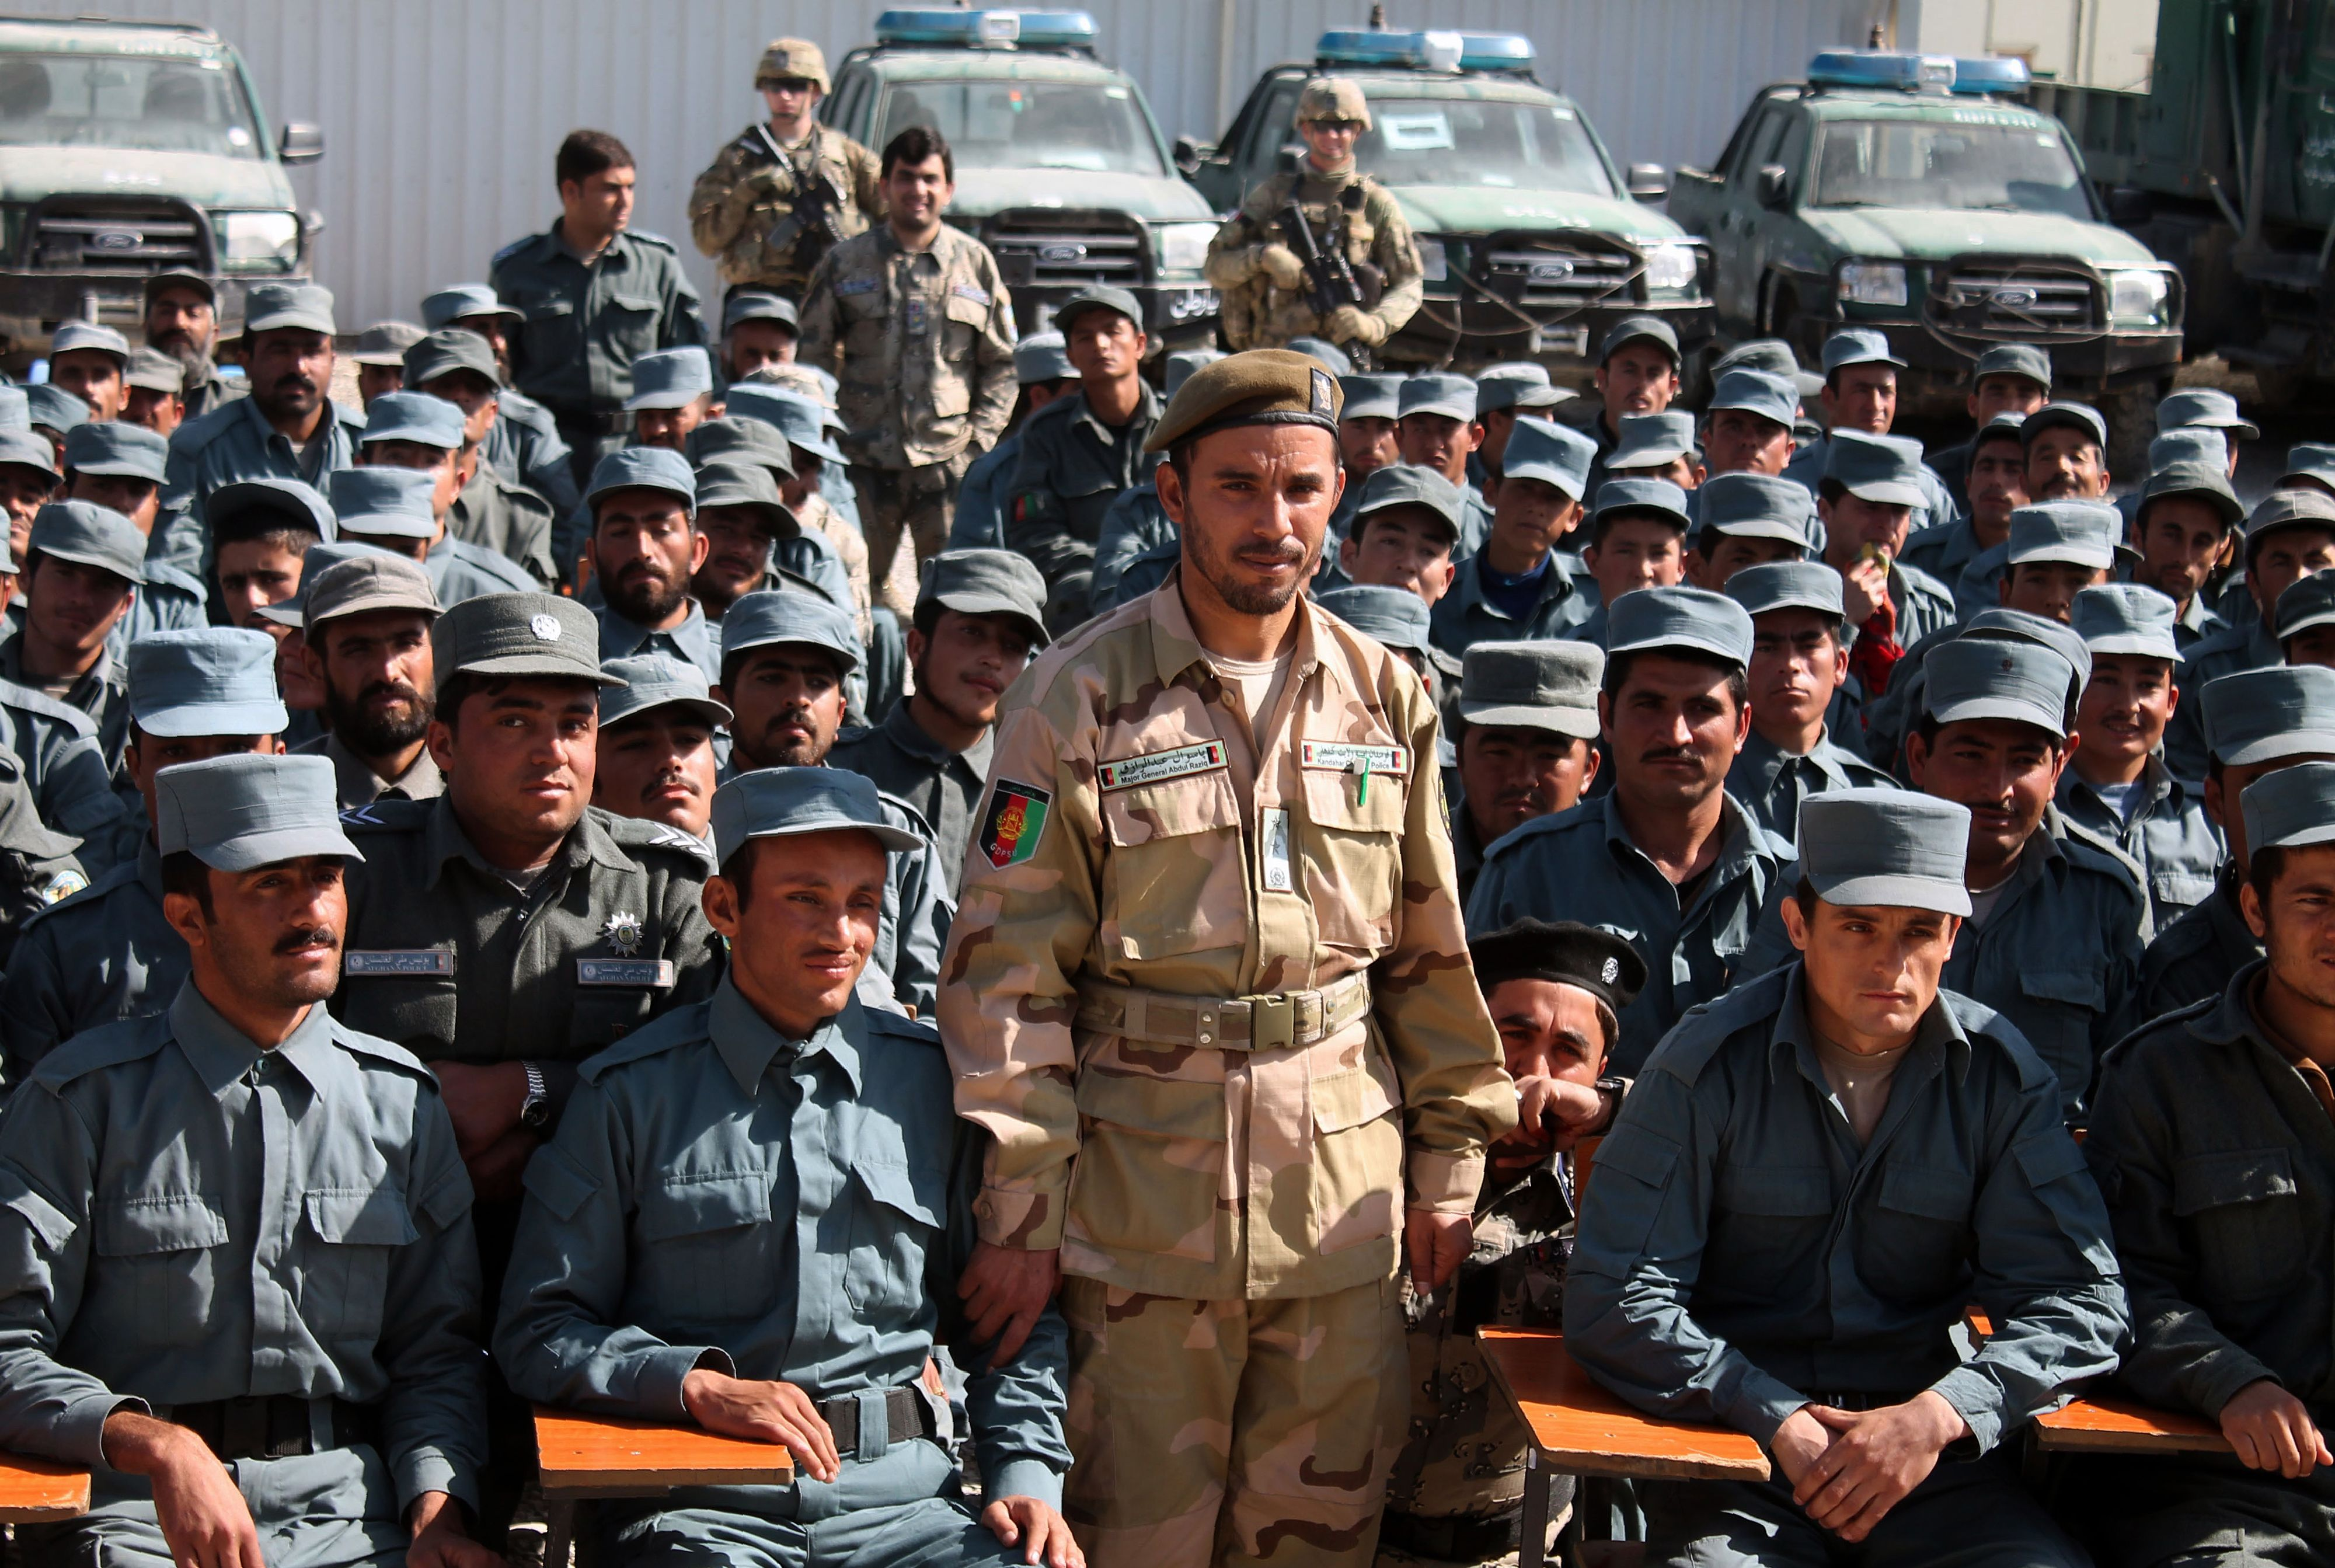 In this photo taken on February 19, 2017, Afghan General Abdul Raziq (C), police chief of Kandahar, poses for a picture during a graduation ceremony at a police training centre in Kandahar province. - An Afghan security chief and a journalist were killed and three Americans wounded on October 18 when a gunman opened fire on a high-level security meeting attended by top US commander General Scott Miller, officials said. (Photo by JAWED TANVEER / AFP) (Photo credit should read JAWED TANVEER/AFP/Getty Images)